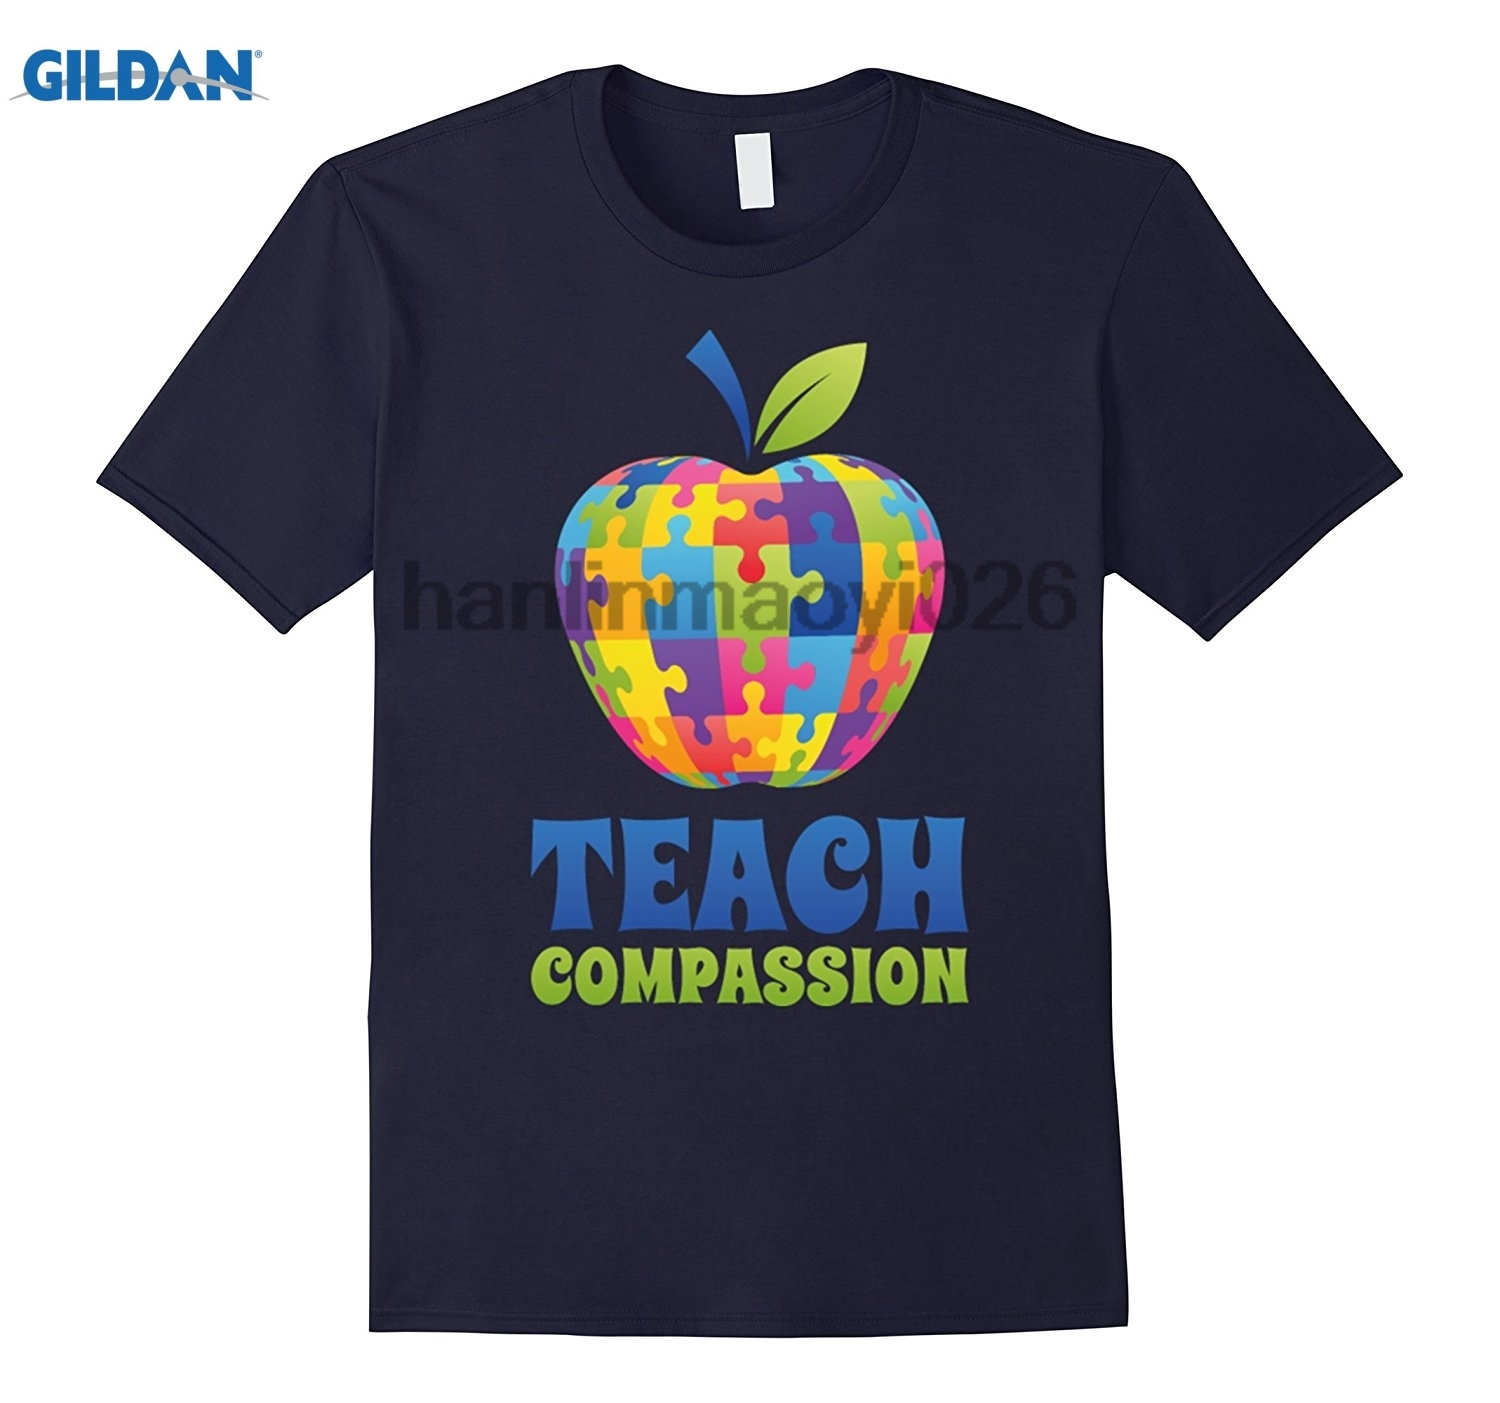 GILDAN Cool Teach Compassion T-Shirt Autism Awareness Day Gifts